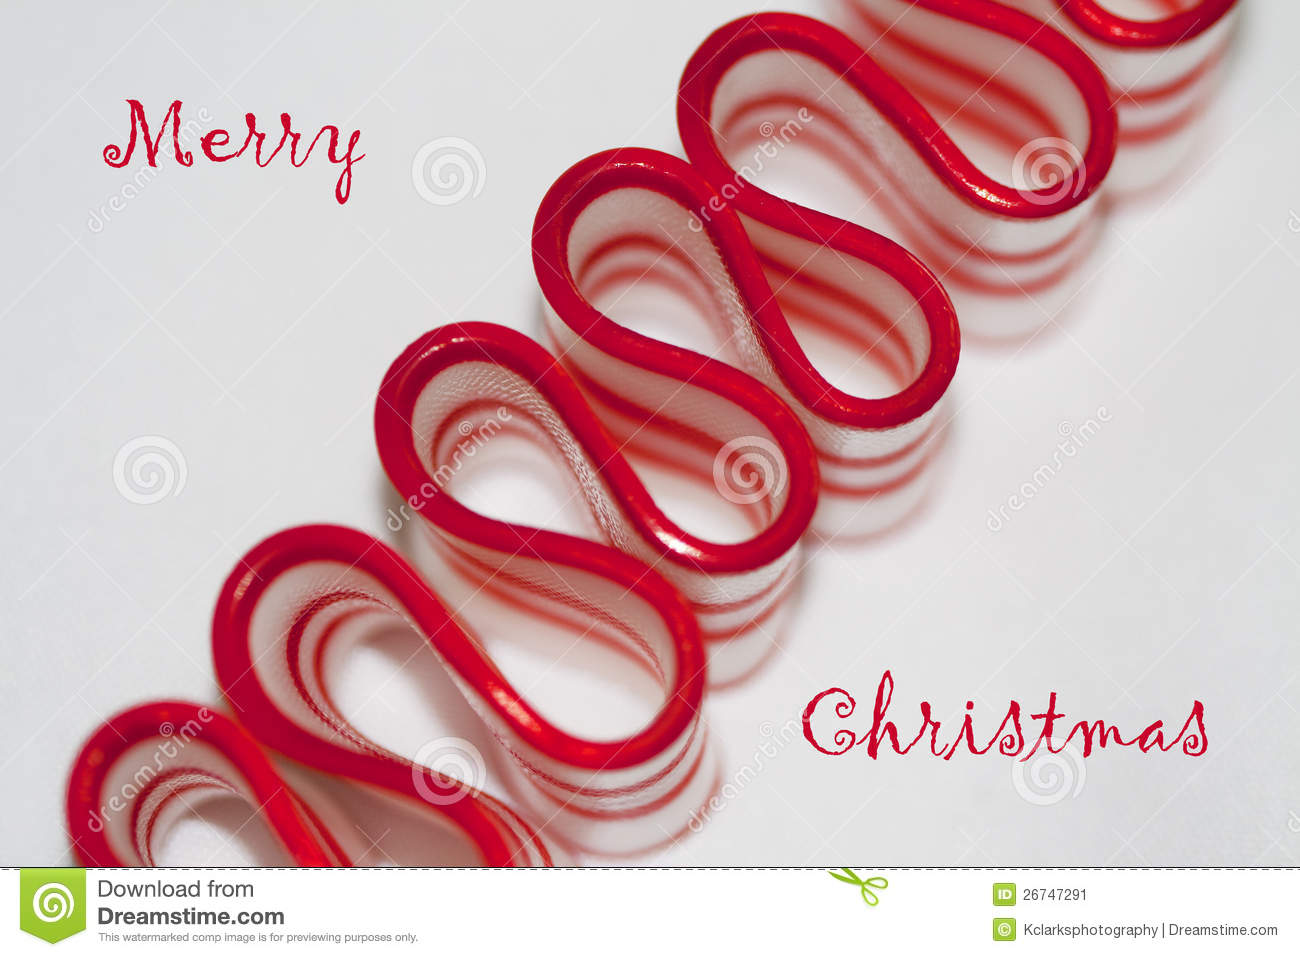 Merry Christmas Ribbon Candy Greeting Stock Image - Image of merry ...